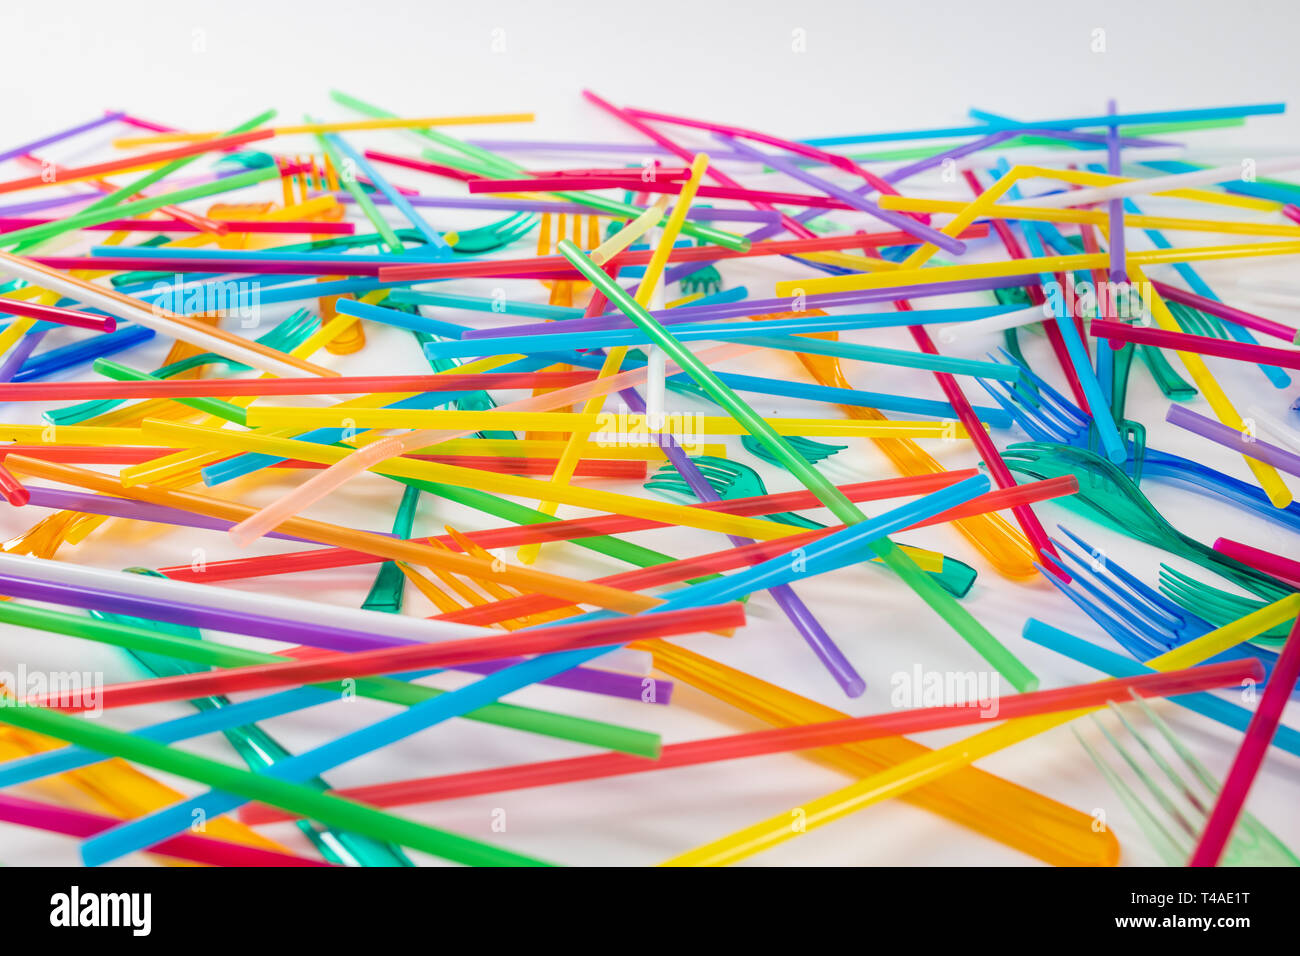 Bright and toxic disposable straws lying with colorful forks - Stock Image